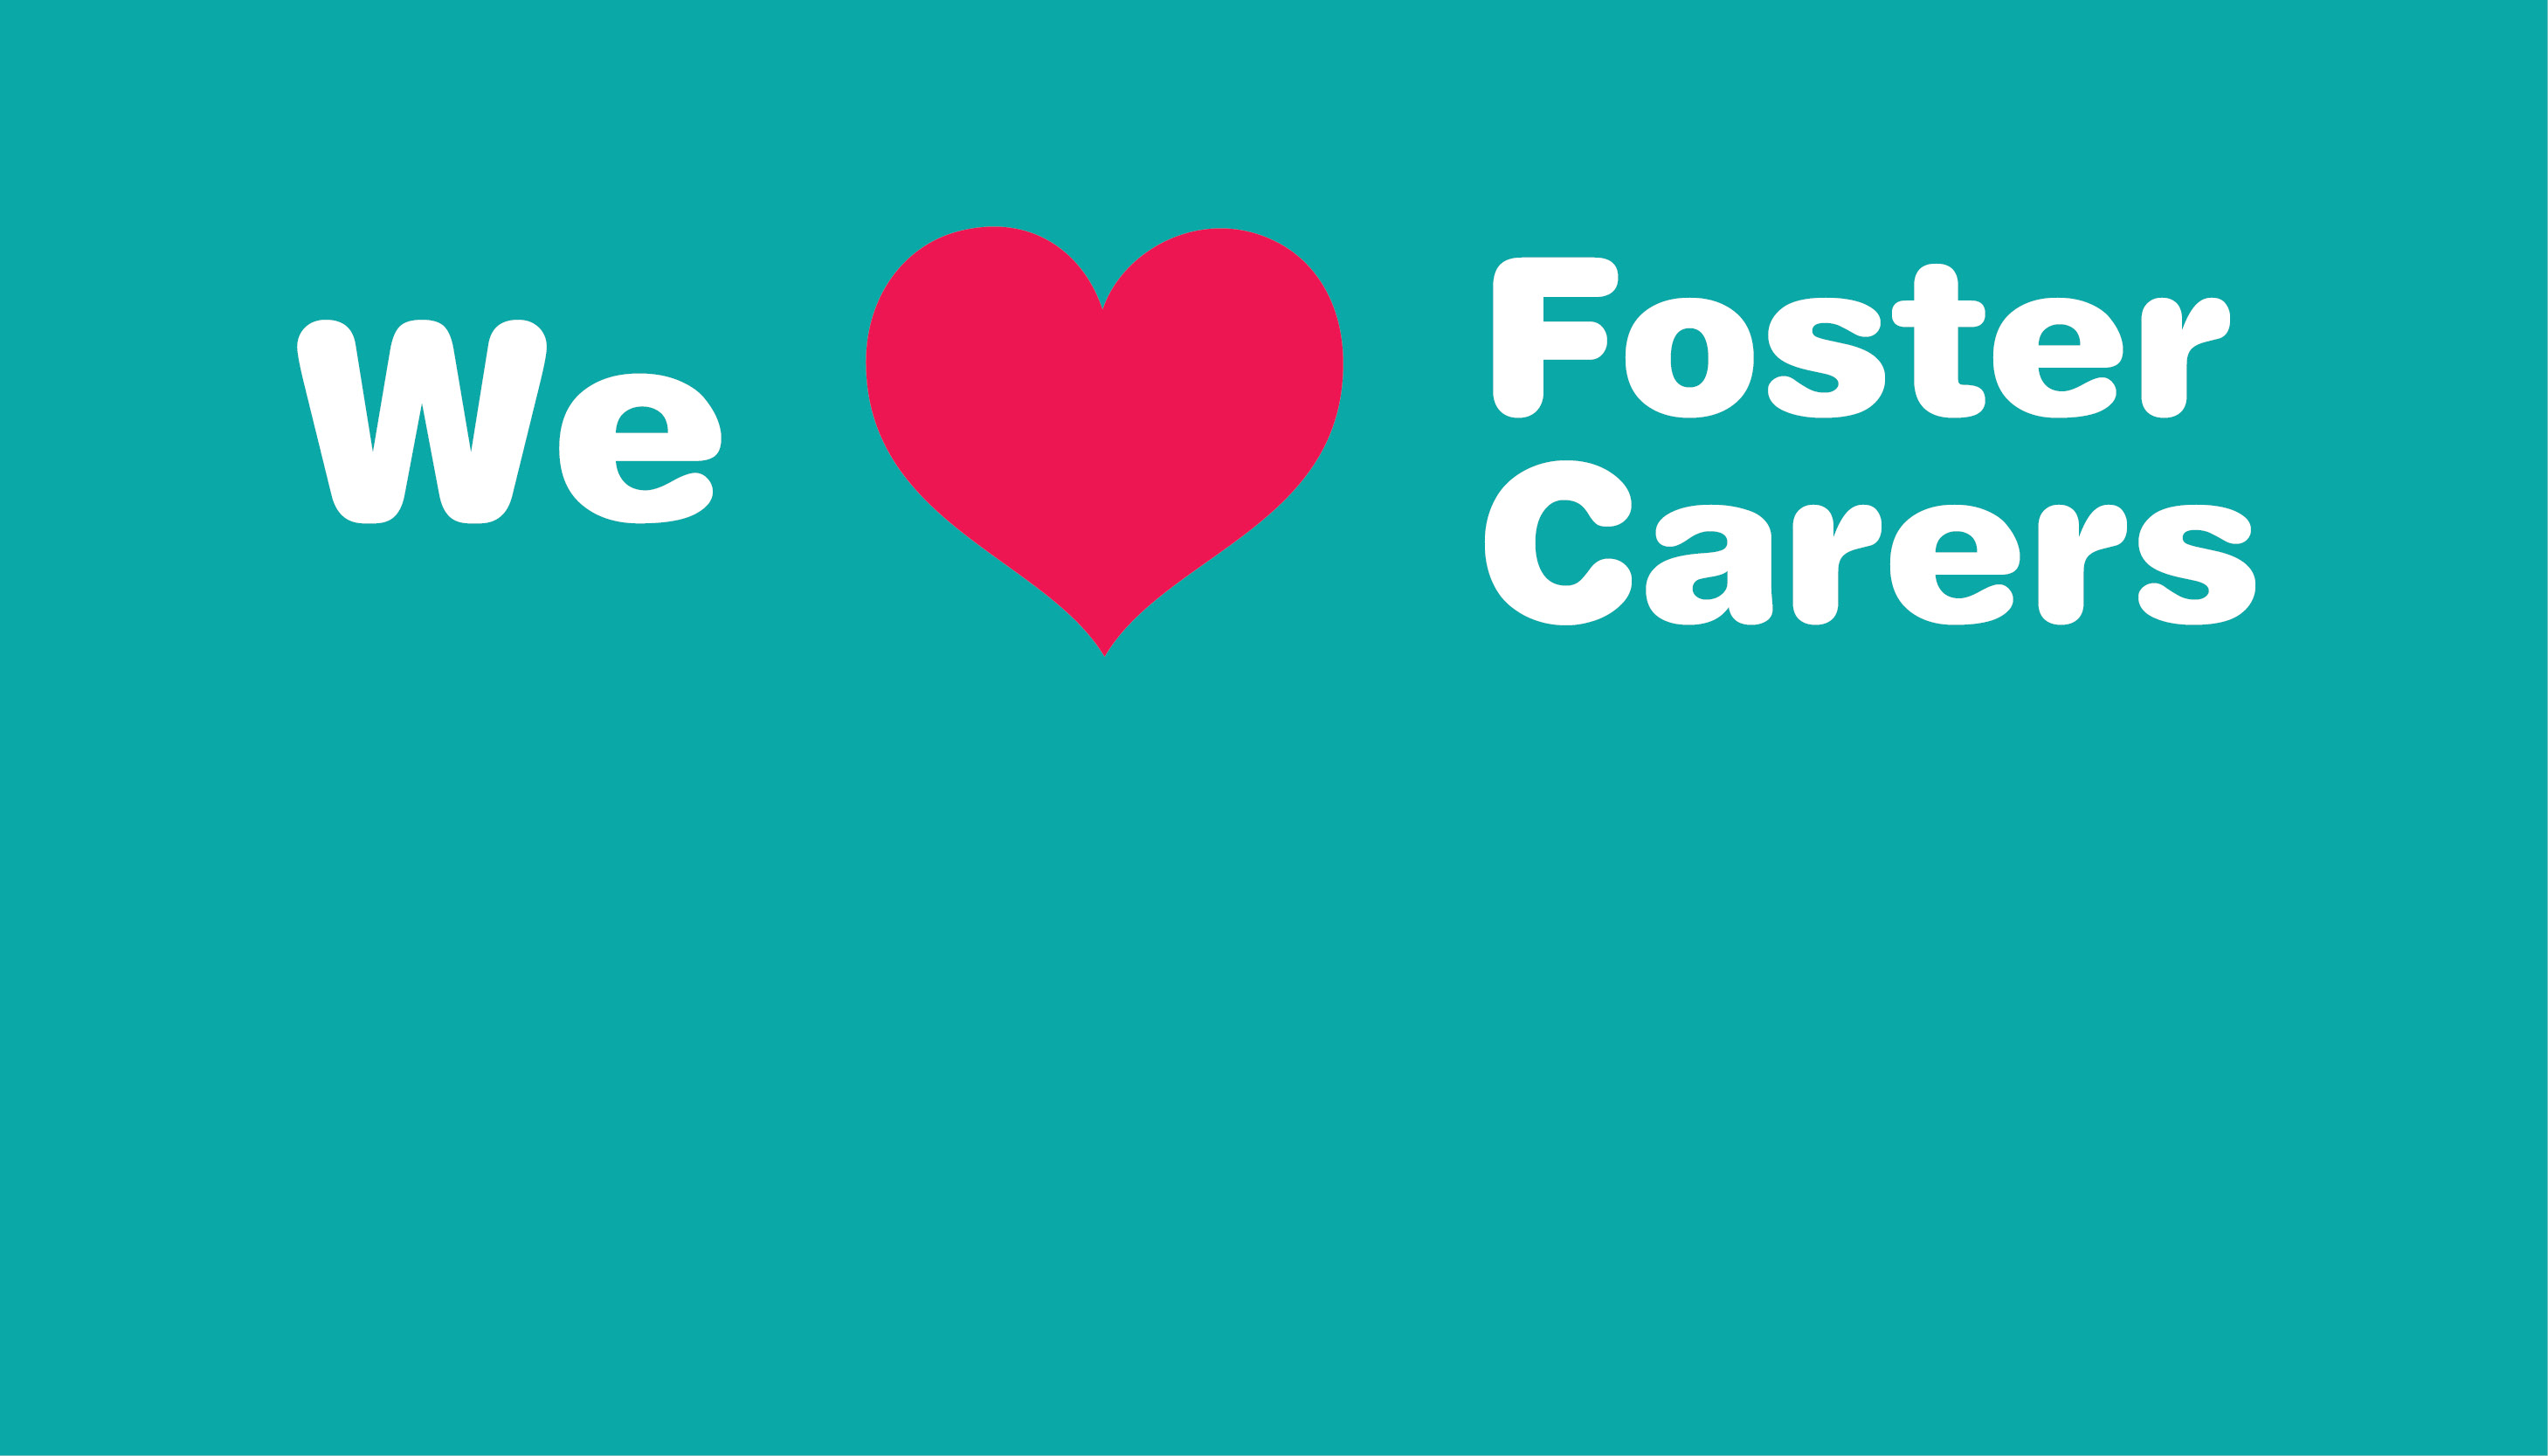 Foster Carers Create Futures